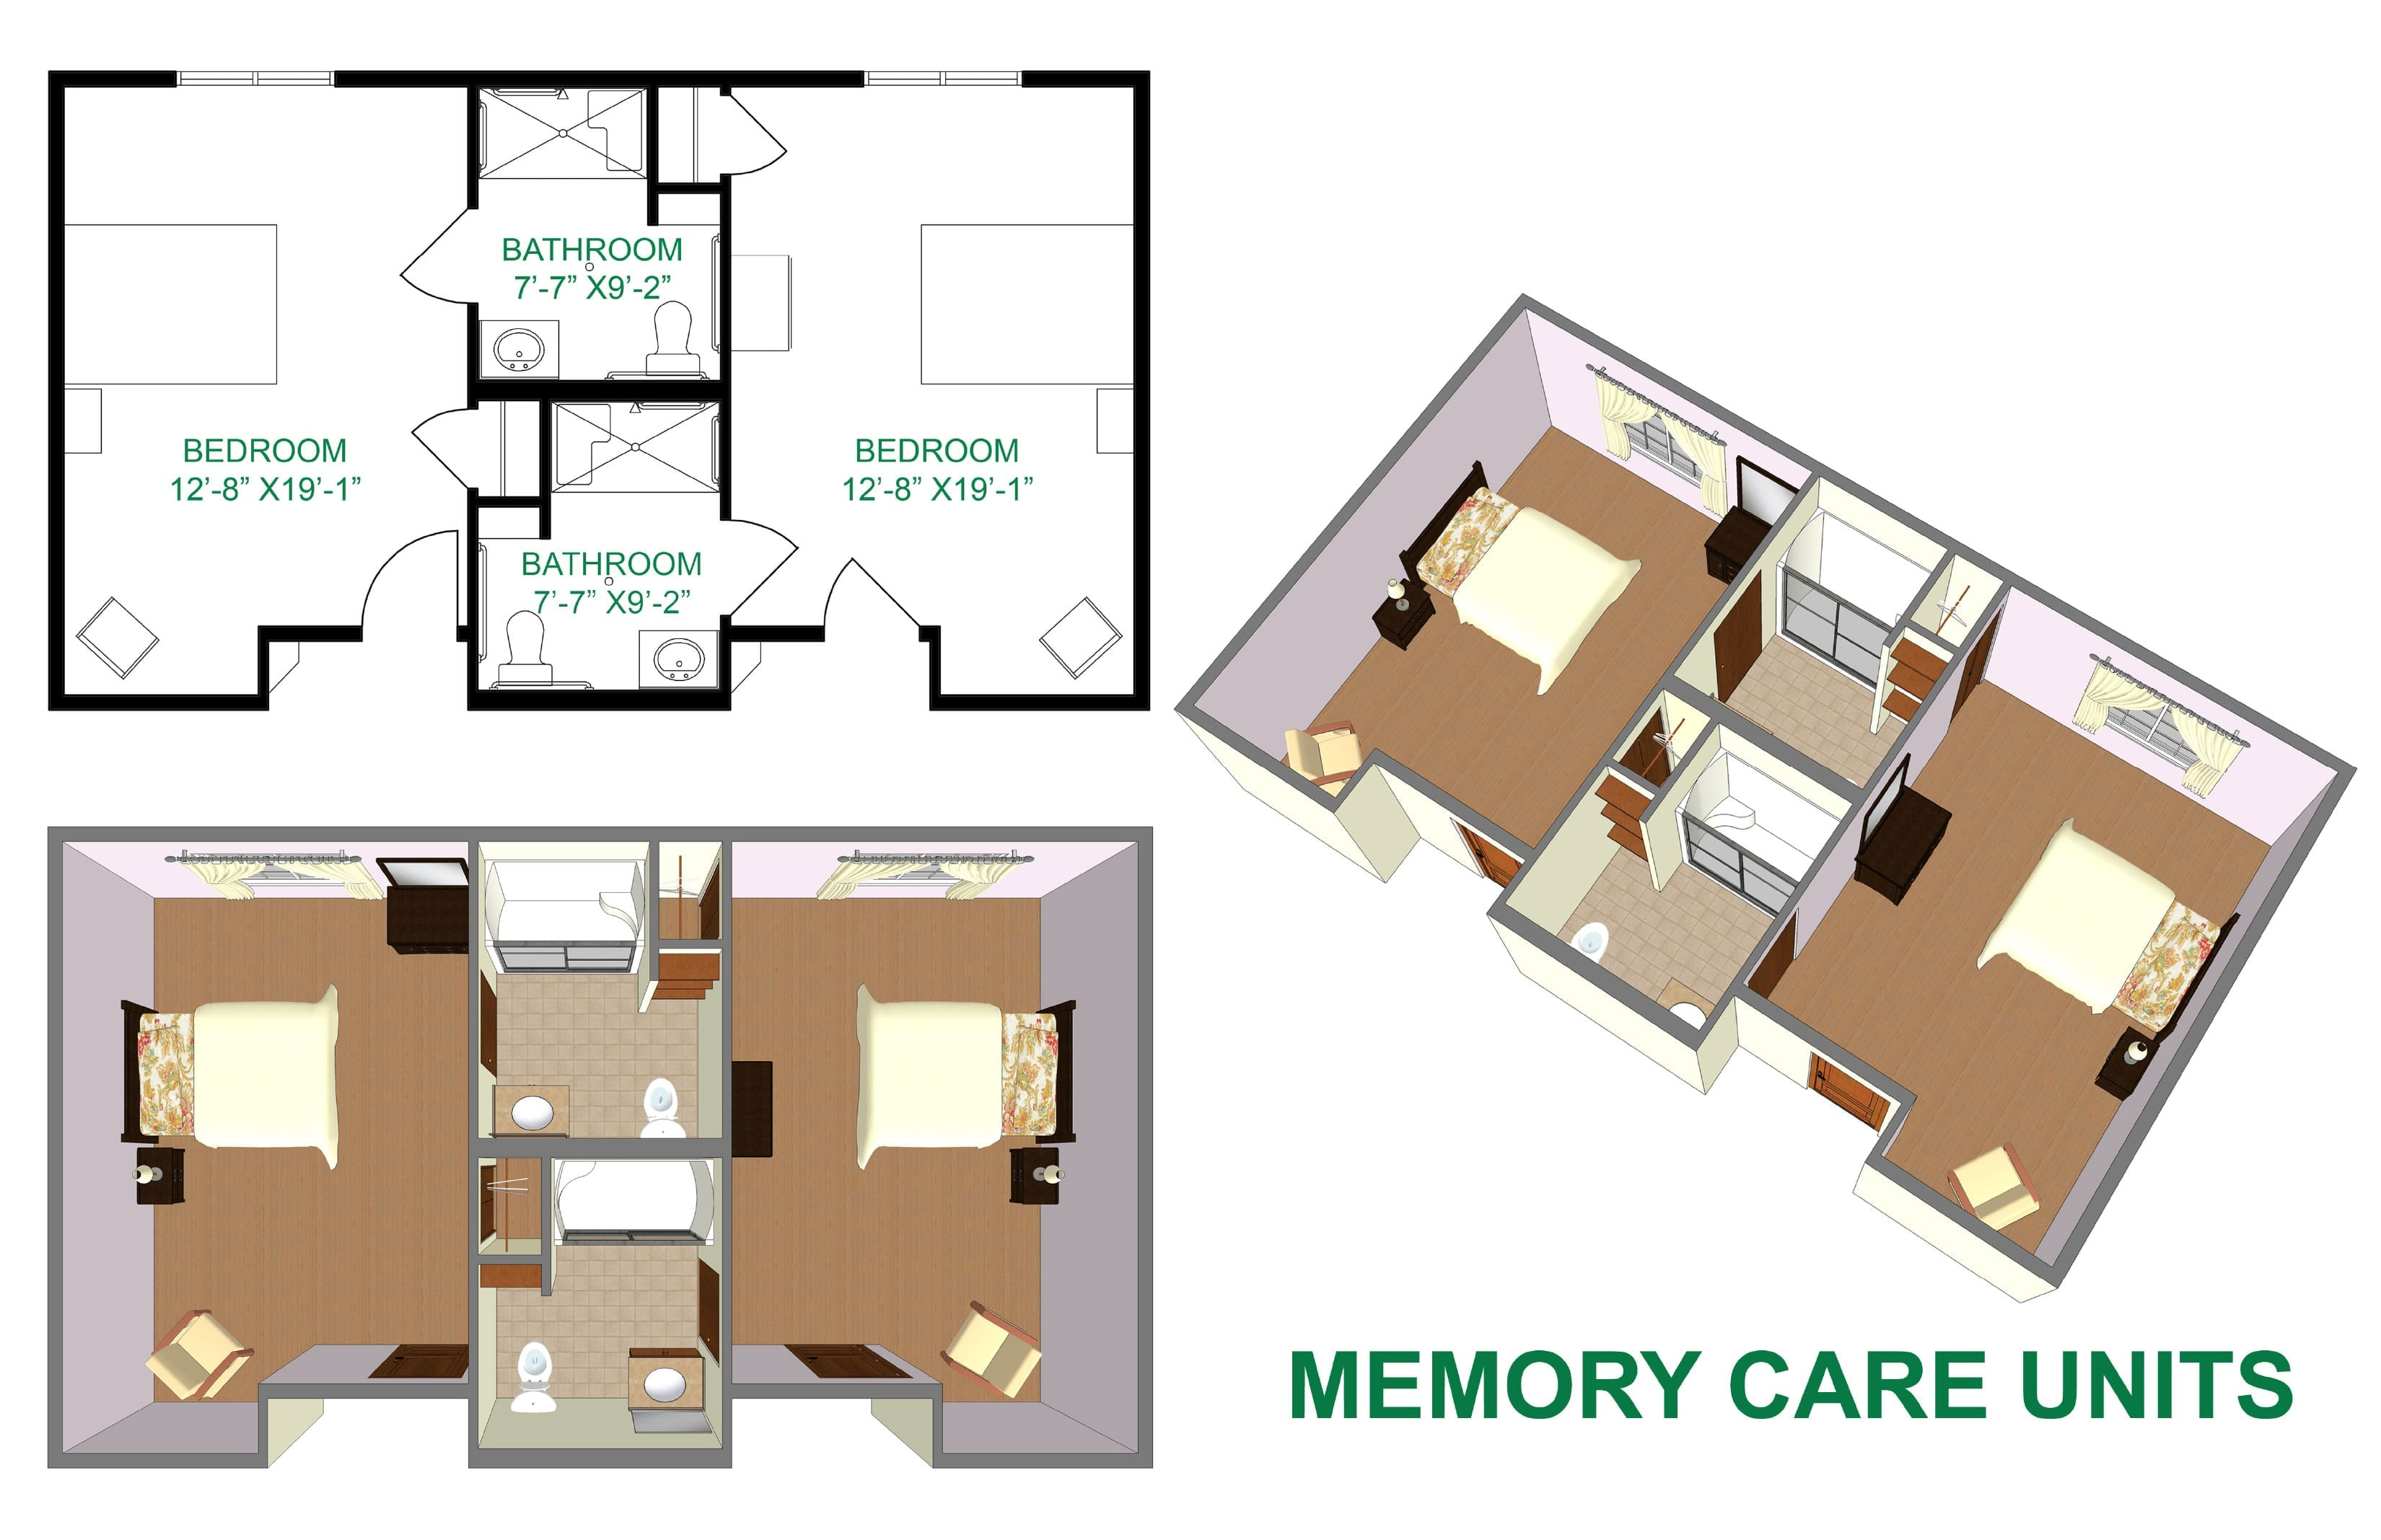 The Village at Skyline Pines memory care room layout